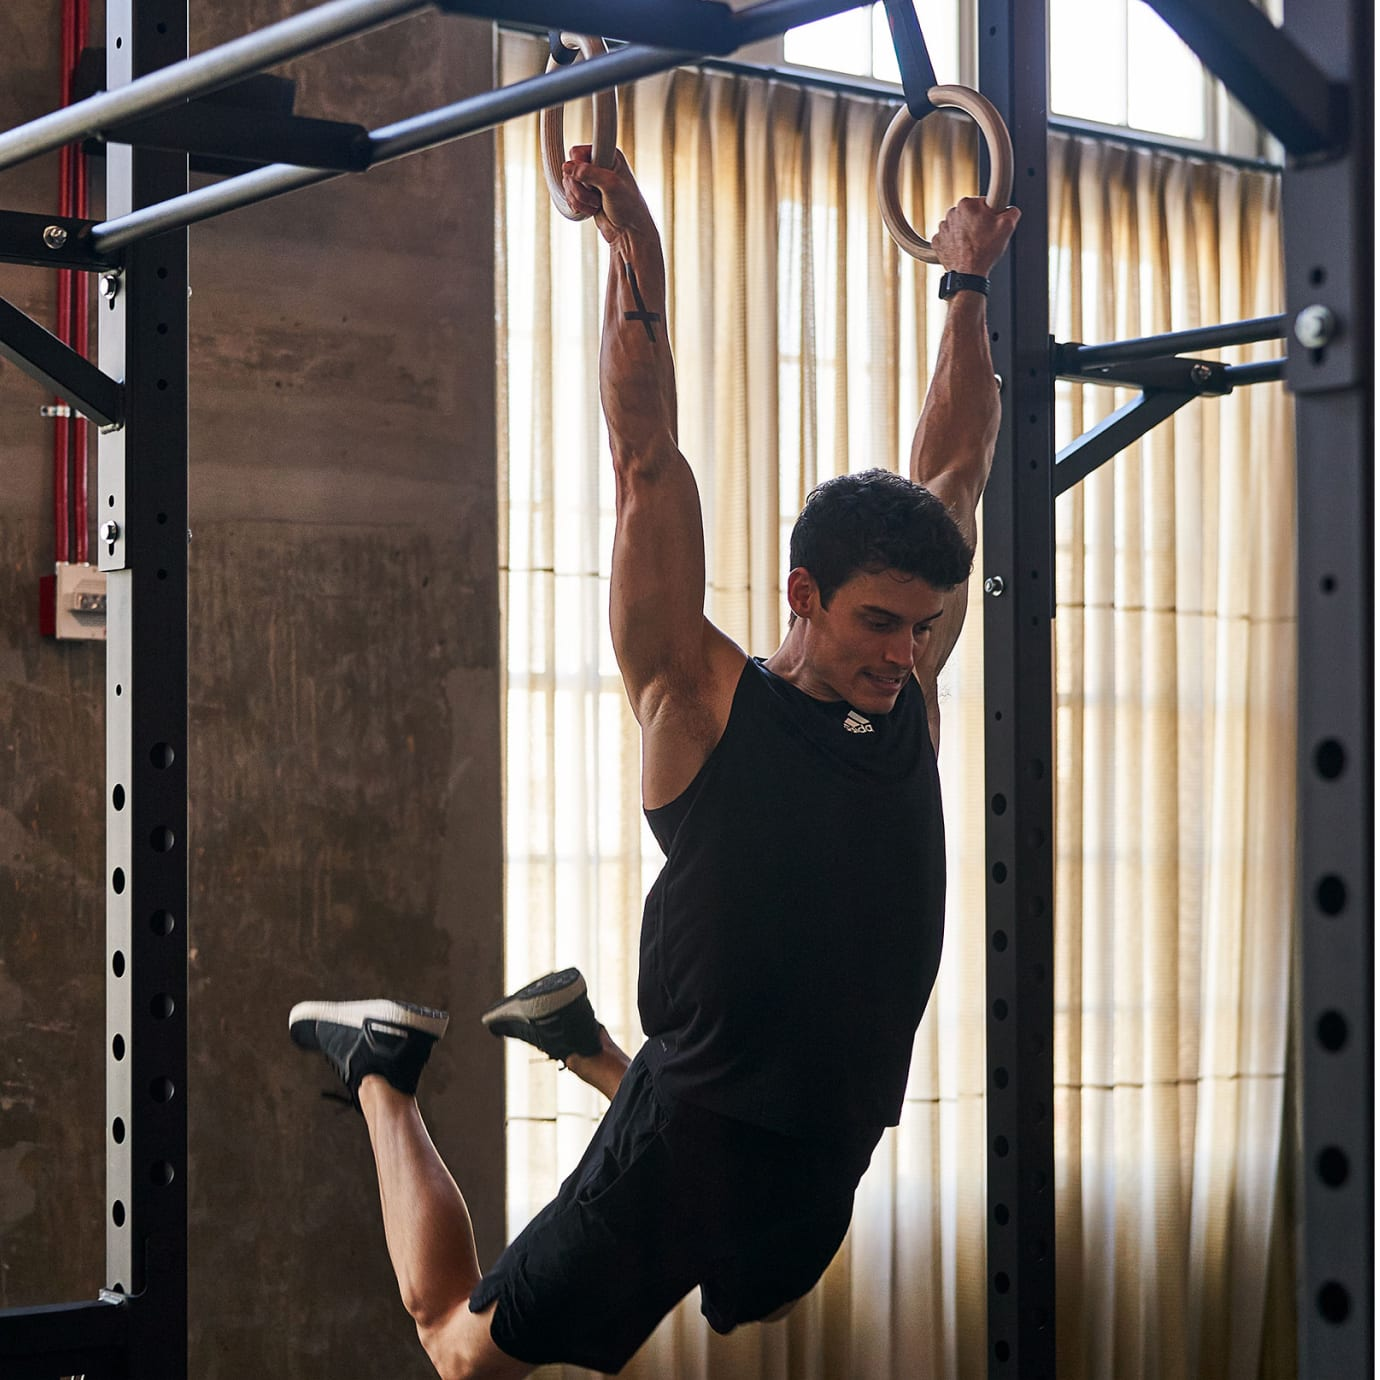 A man swings on fitness rings in a gym.